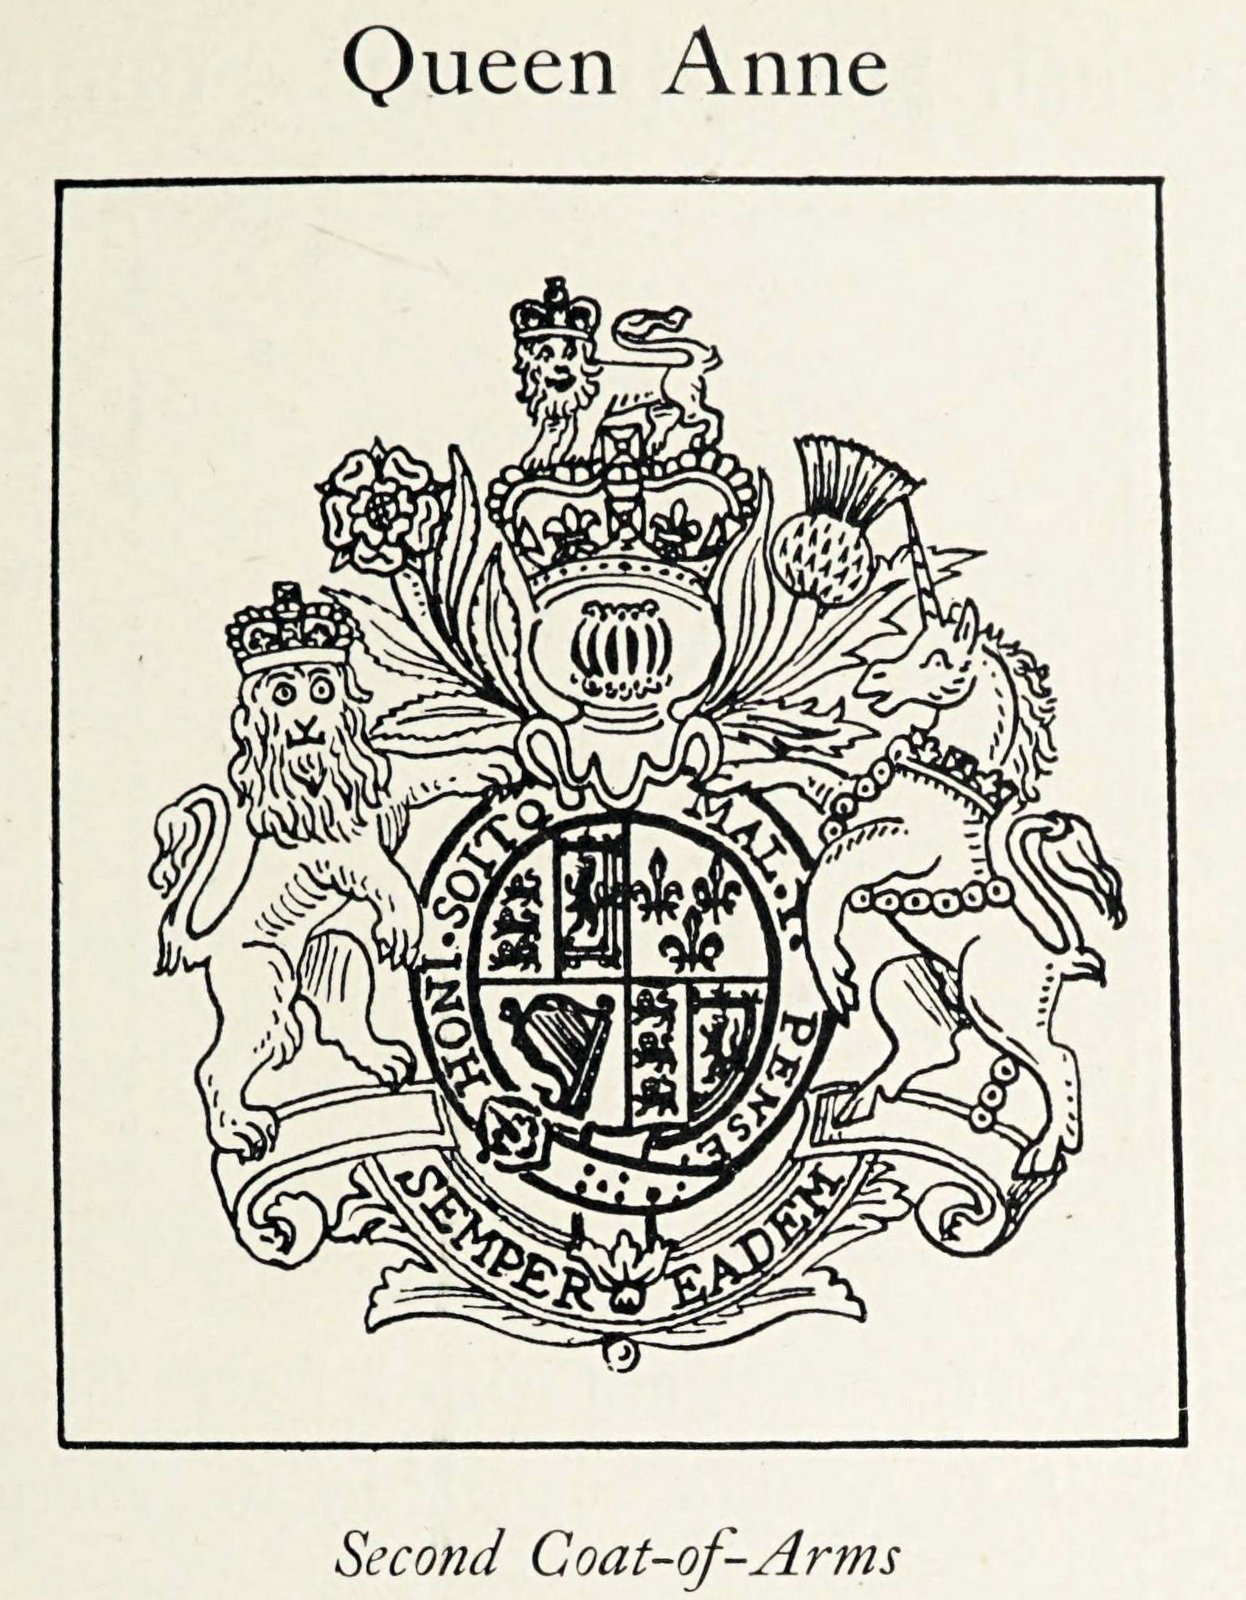 Queen Anne with unicorn on old coat of arms